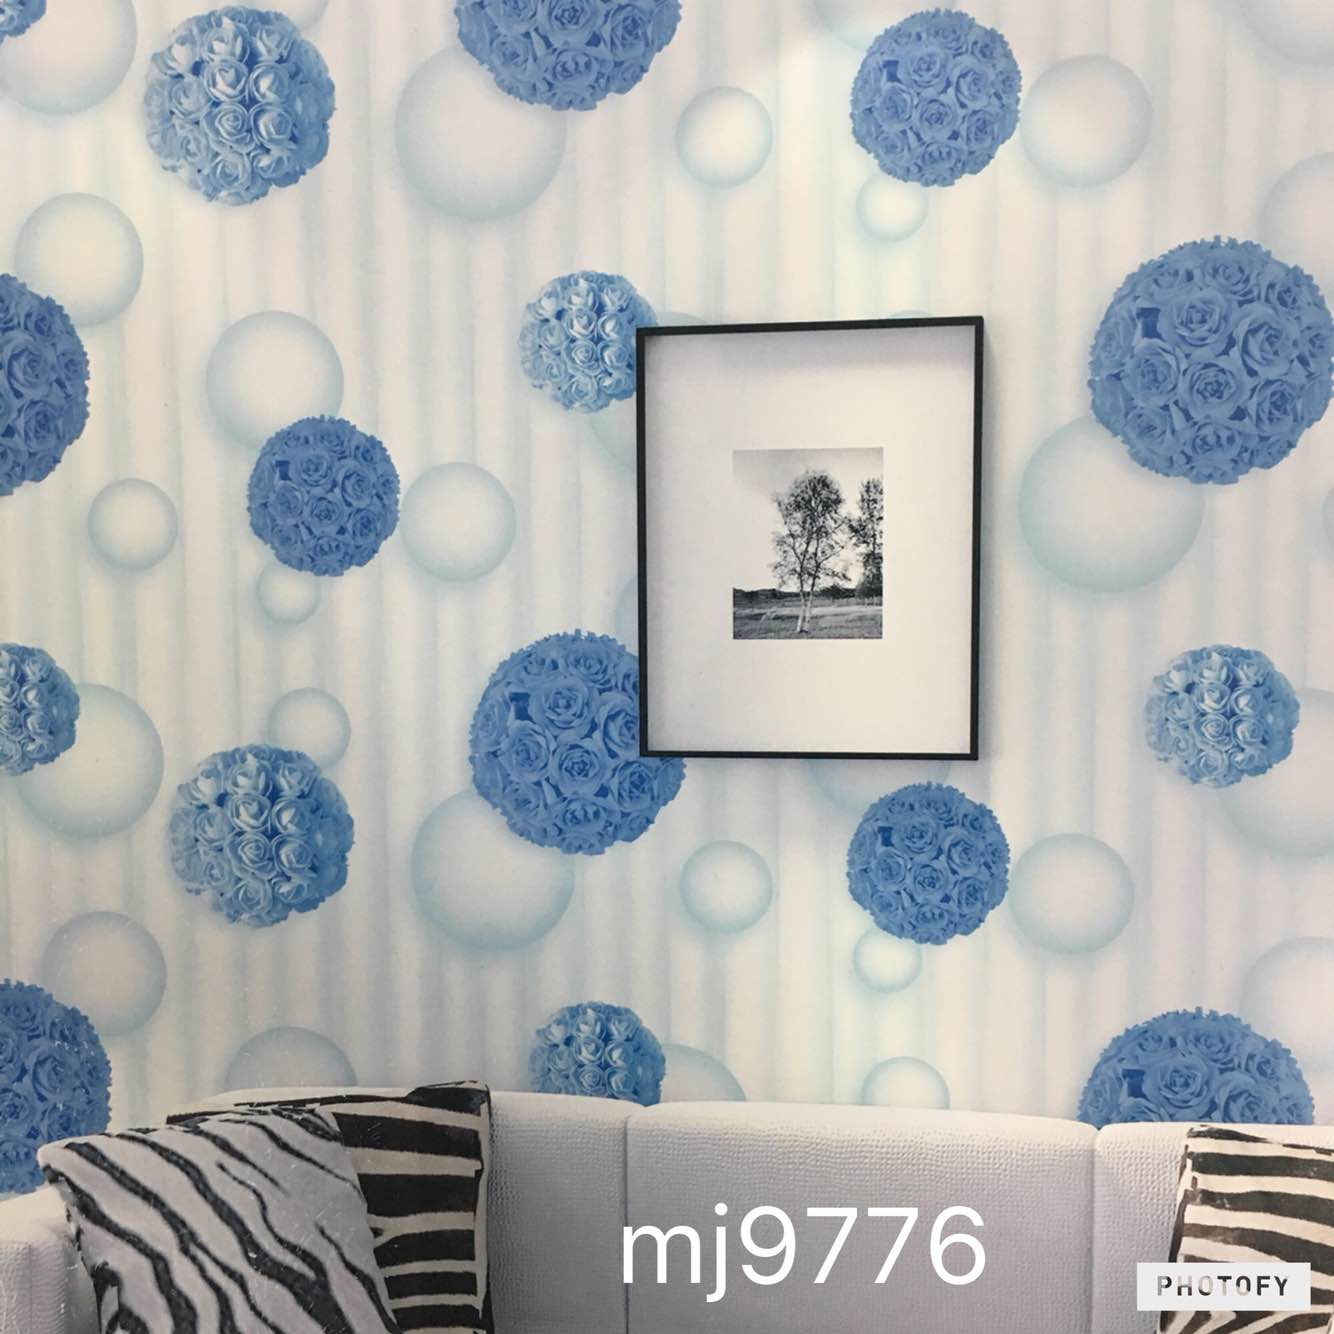 3D Wallpaper A Blue Of Balls Designs For Your Drawing Room Will Match The Interior